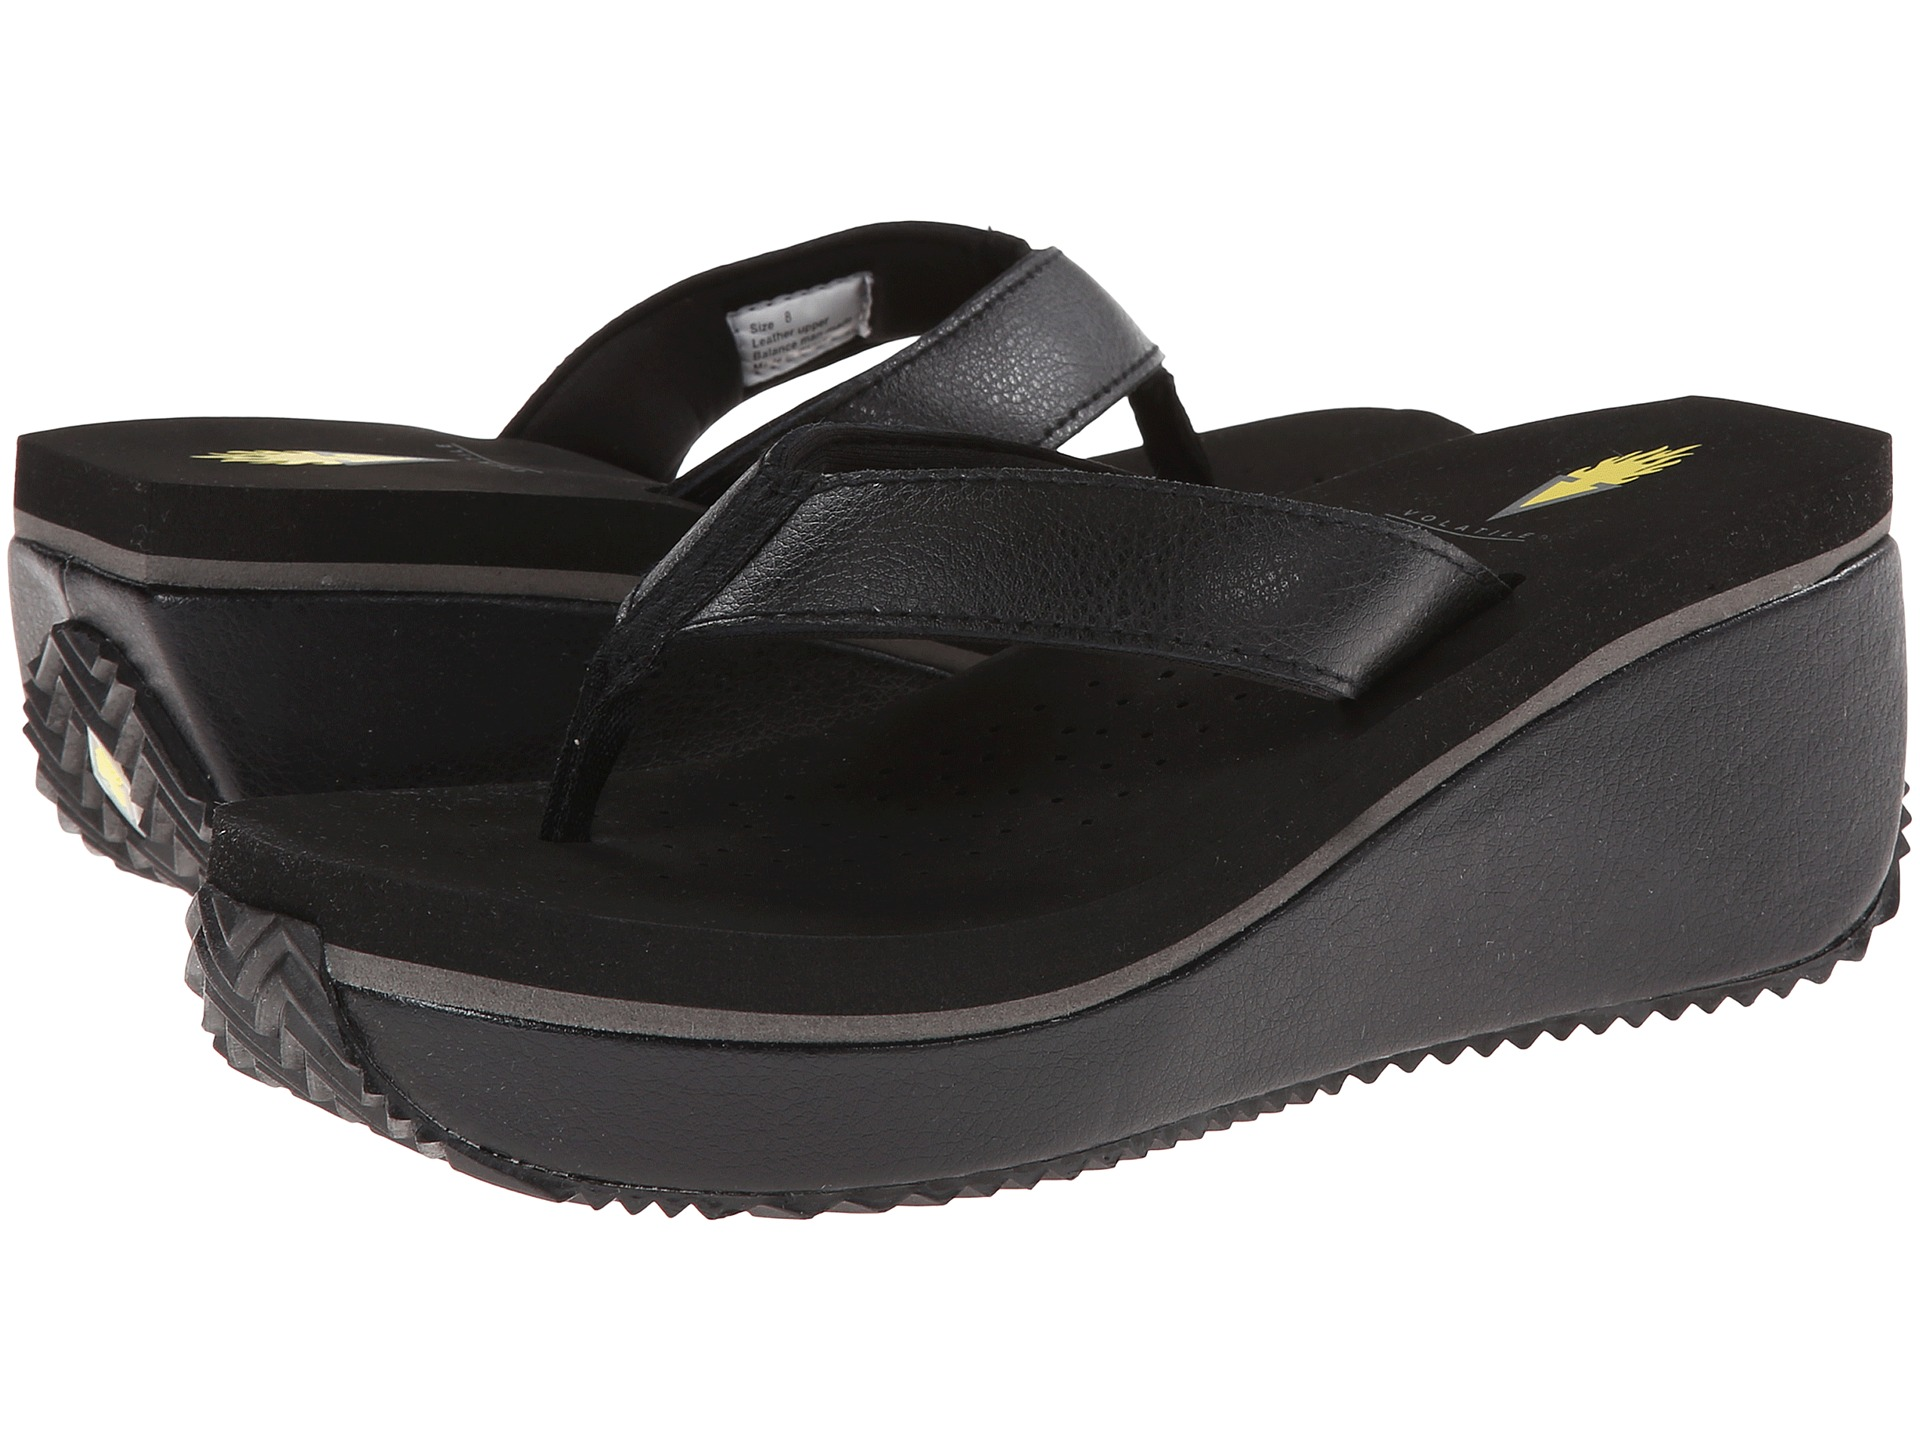 Black volatile sandals